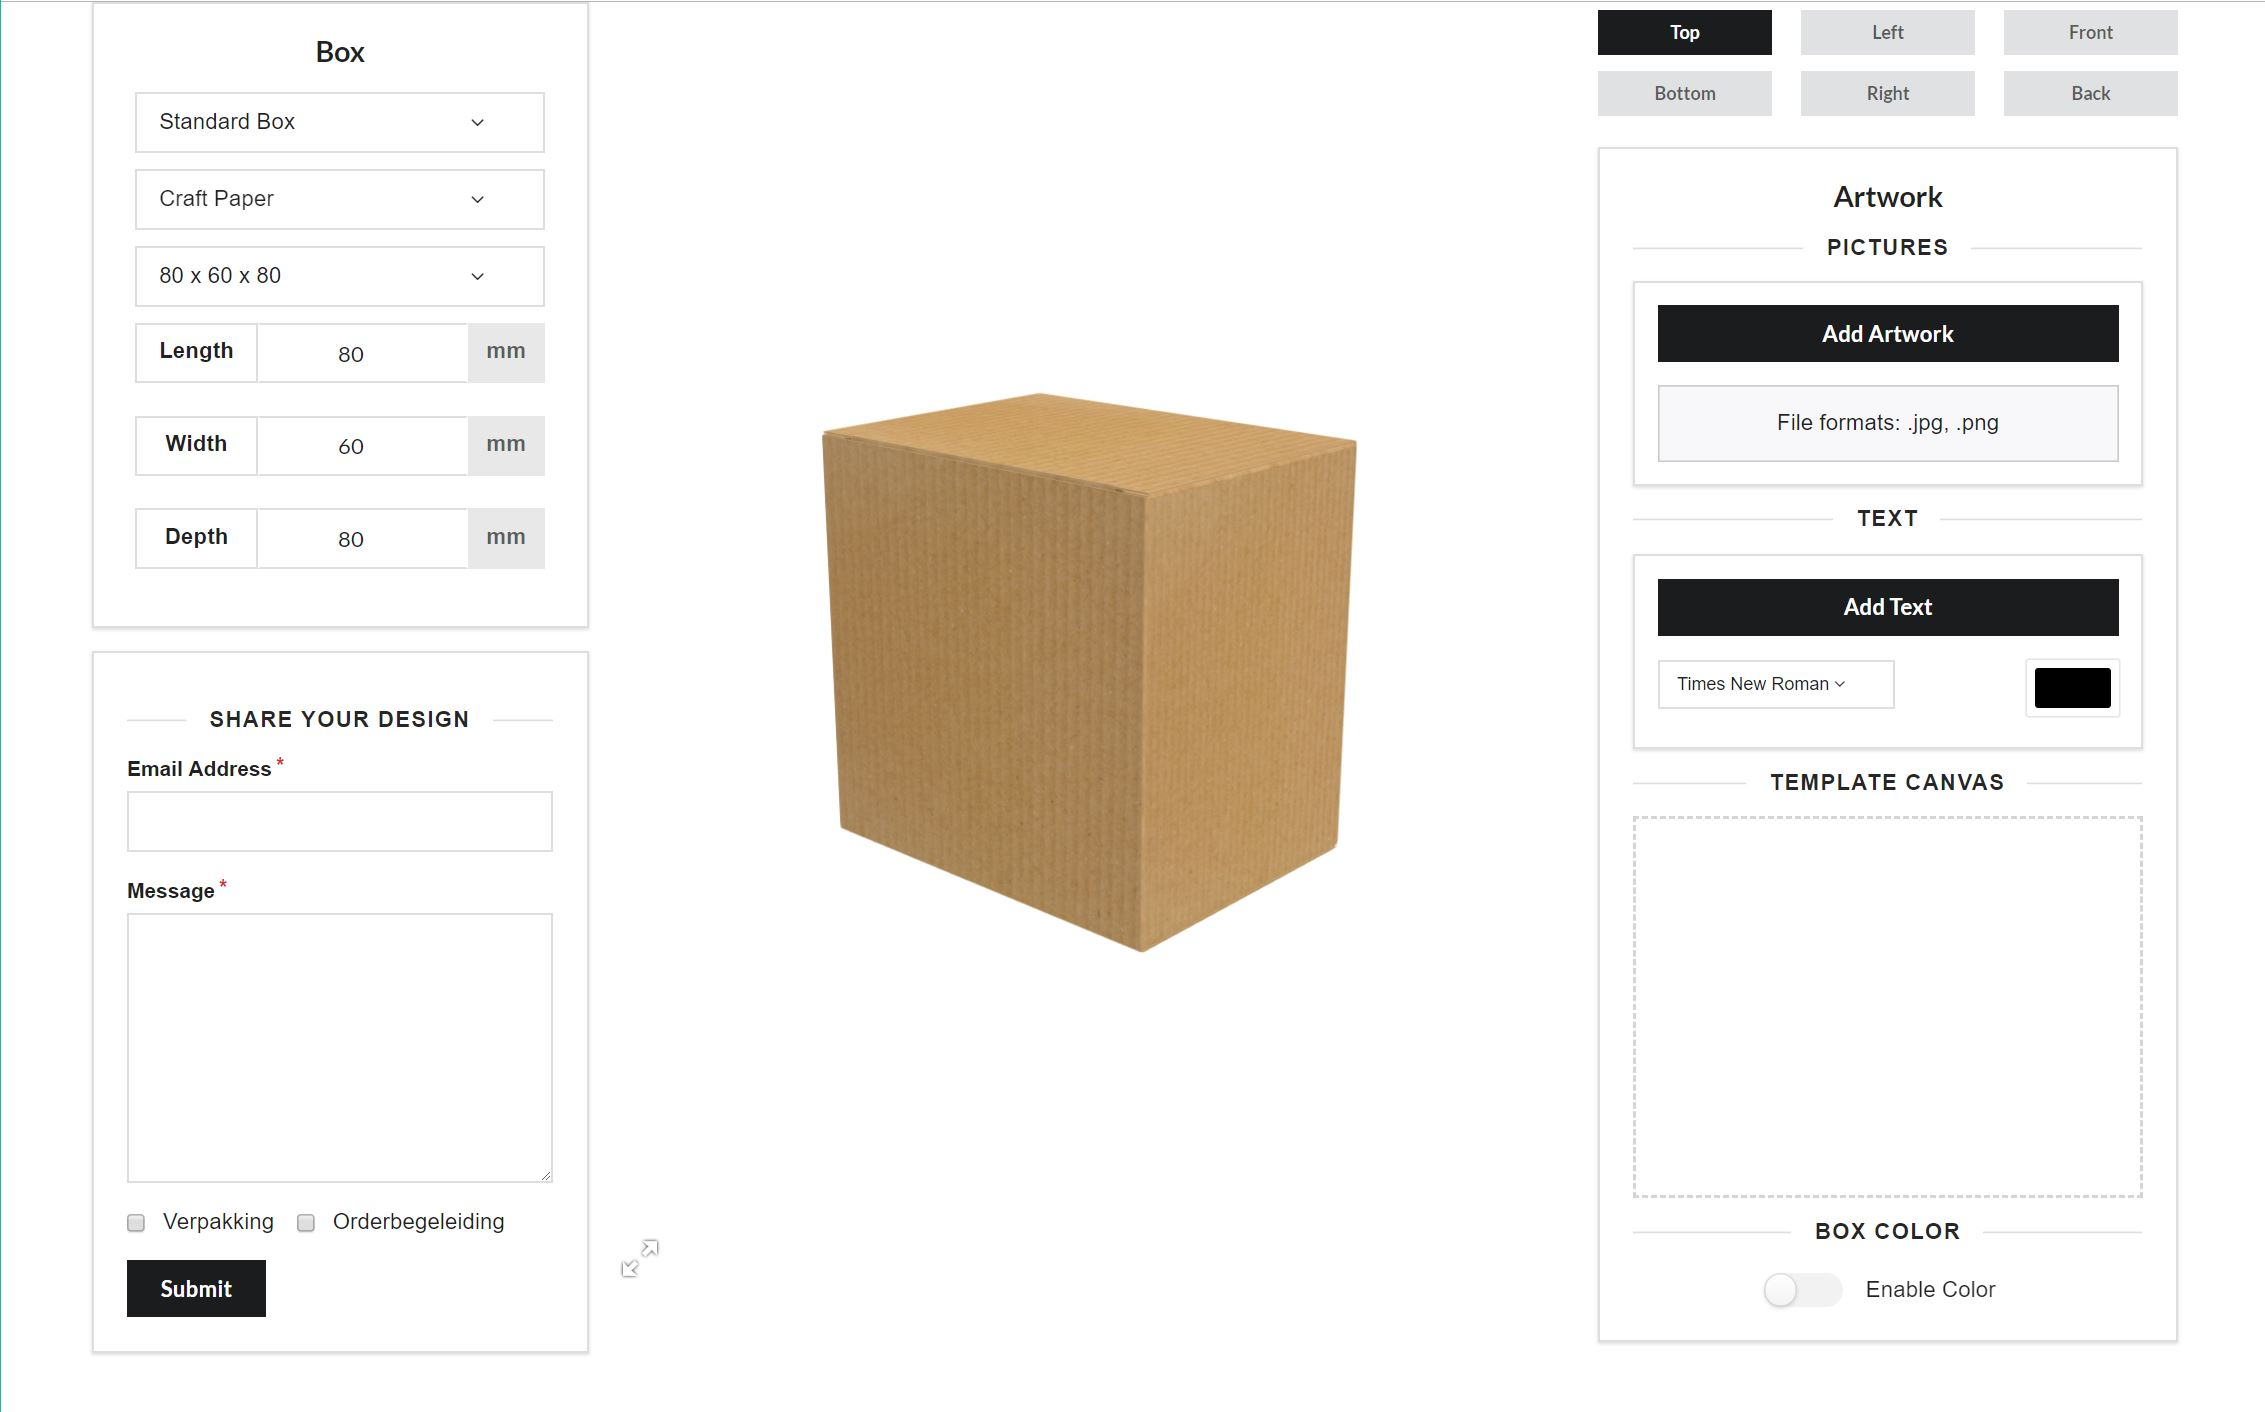 interface for creating custom boxes through a product configurator